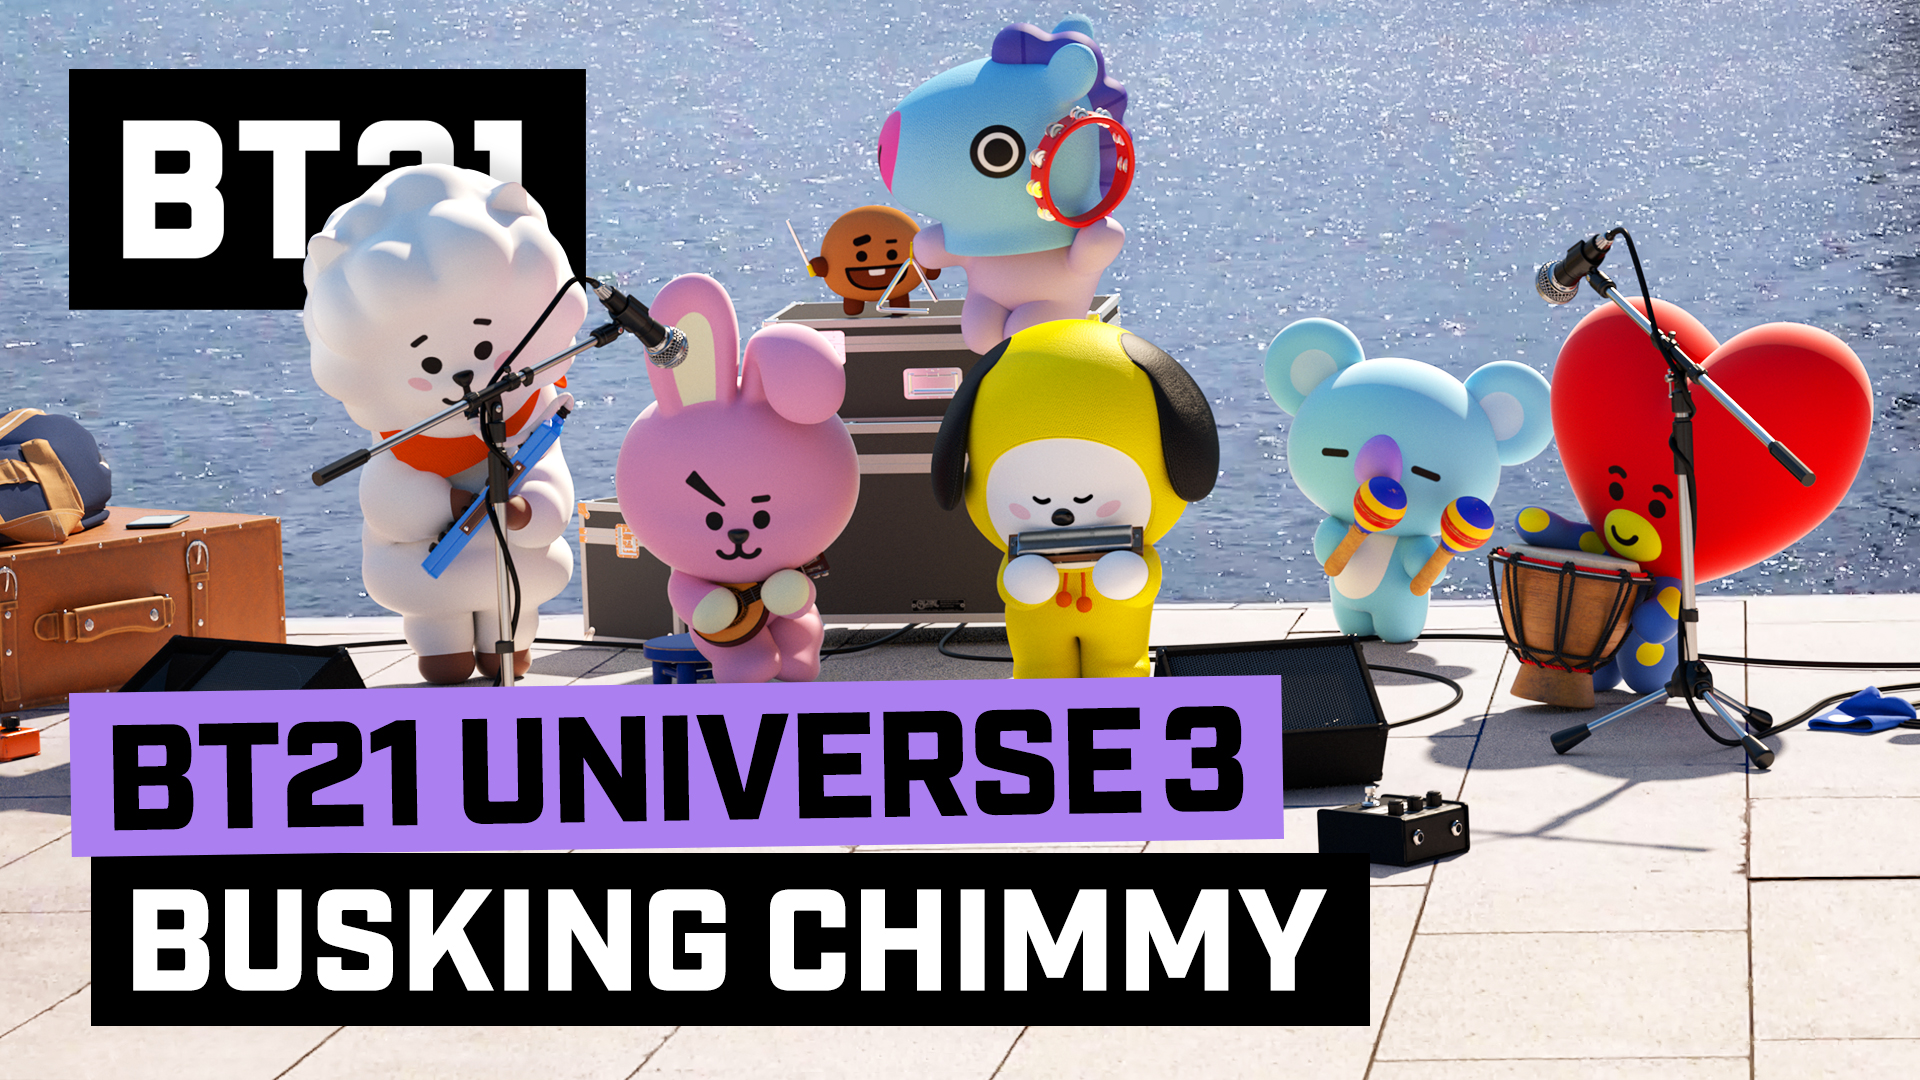 BT21 UNIVERSE 3 ANIMATION EP.02 - Busking CHIMMY